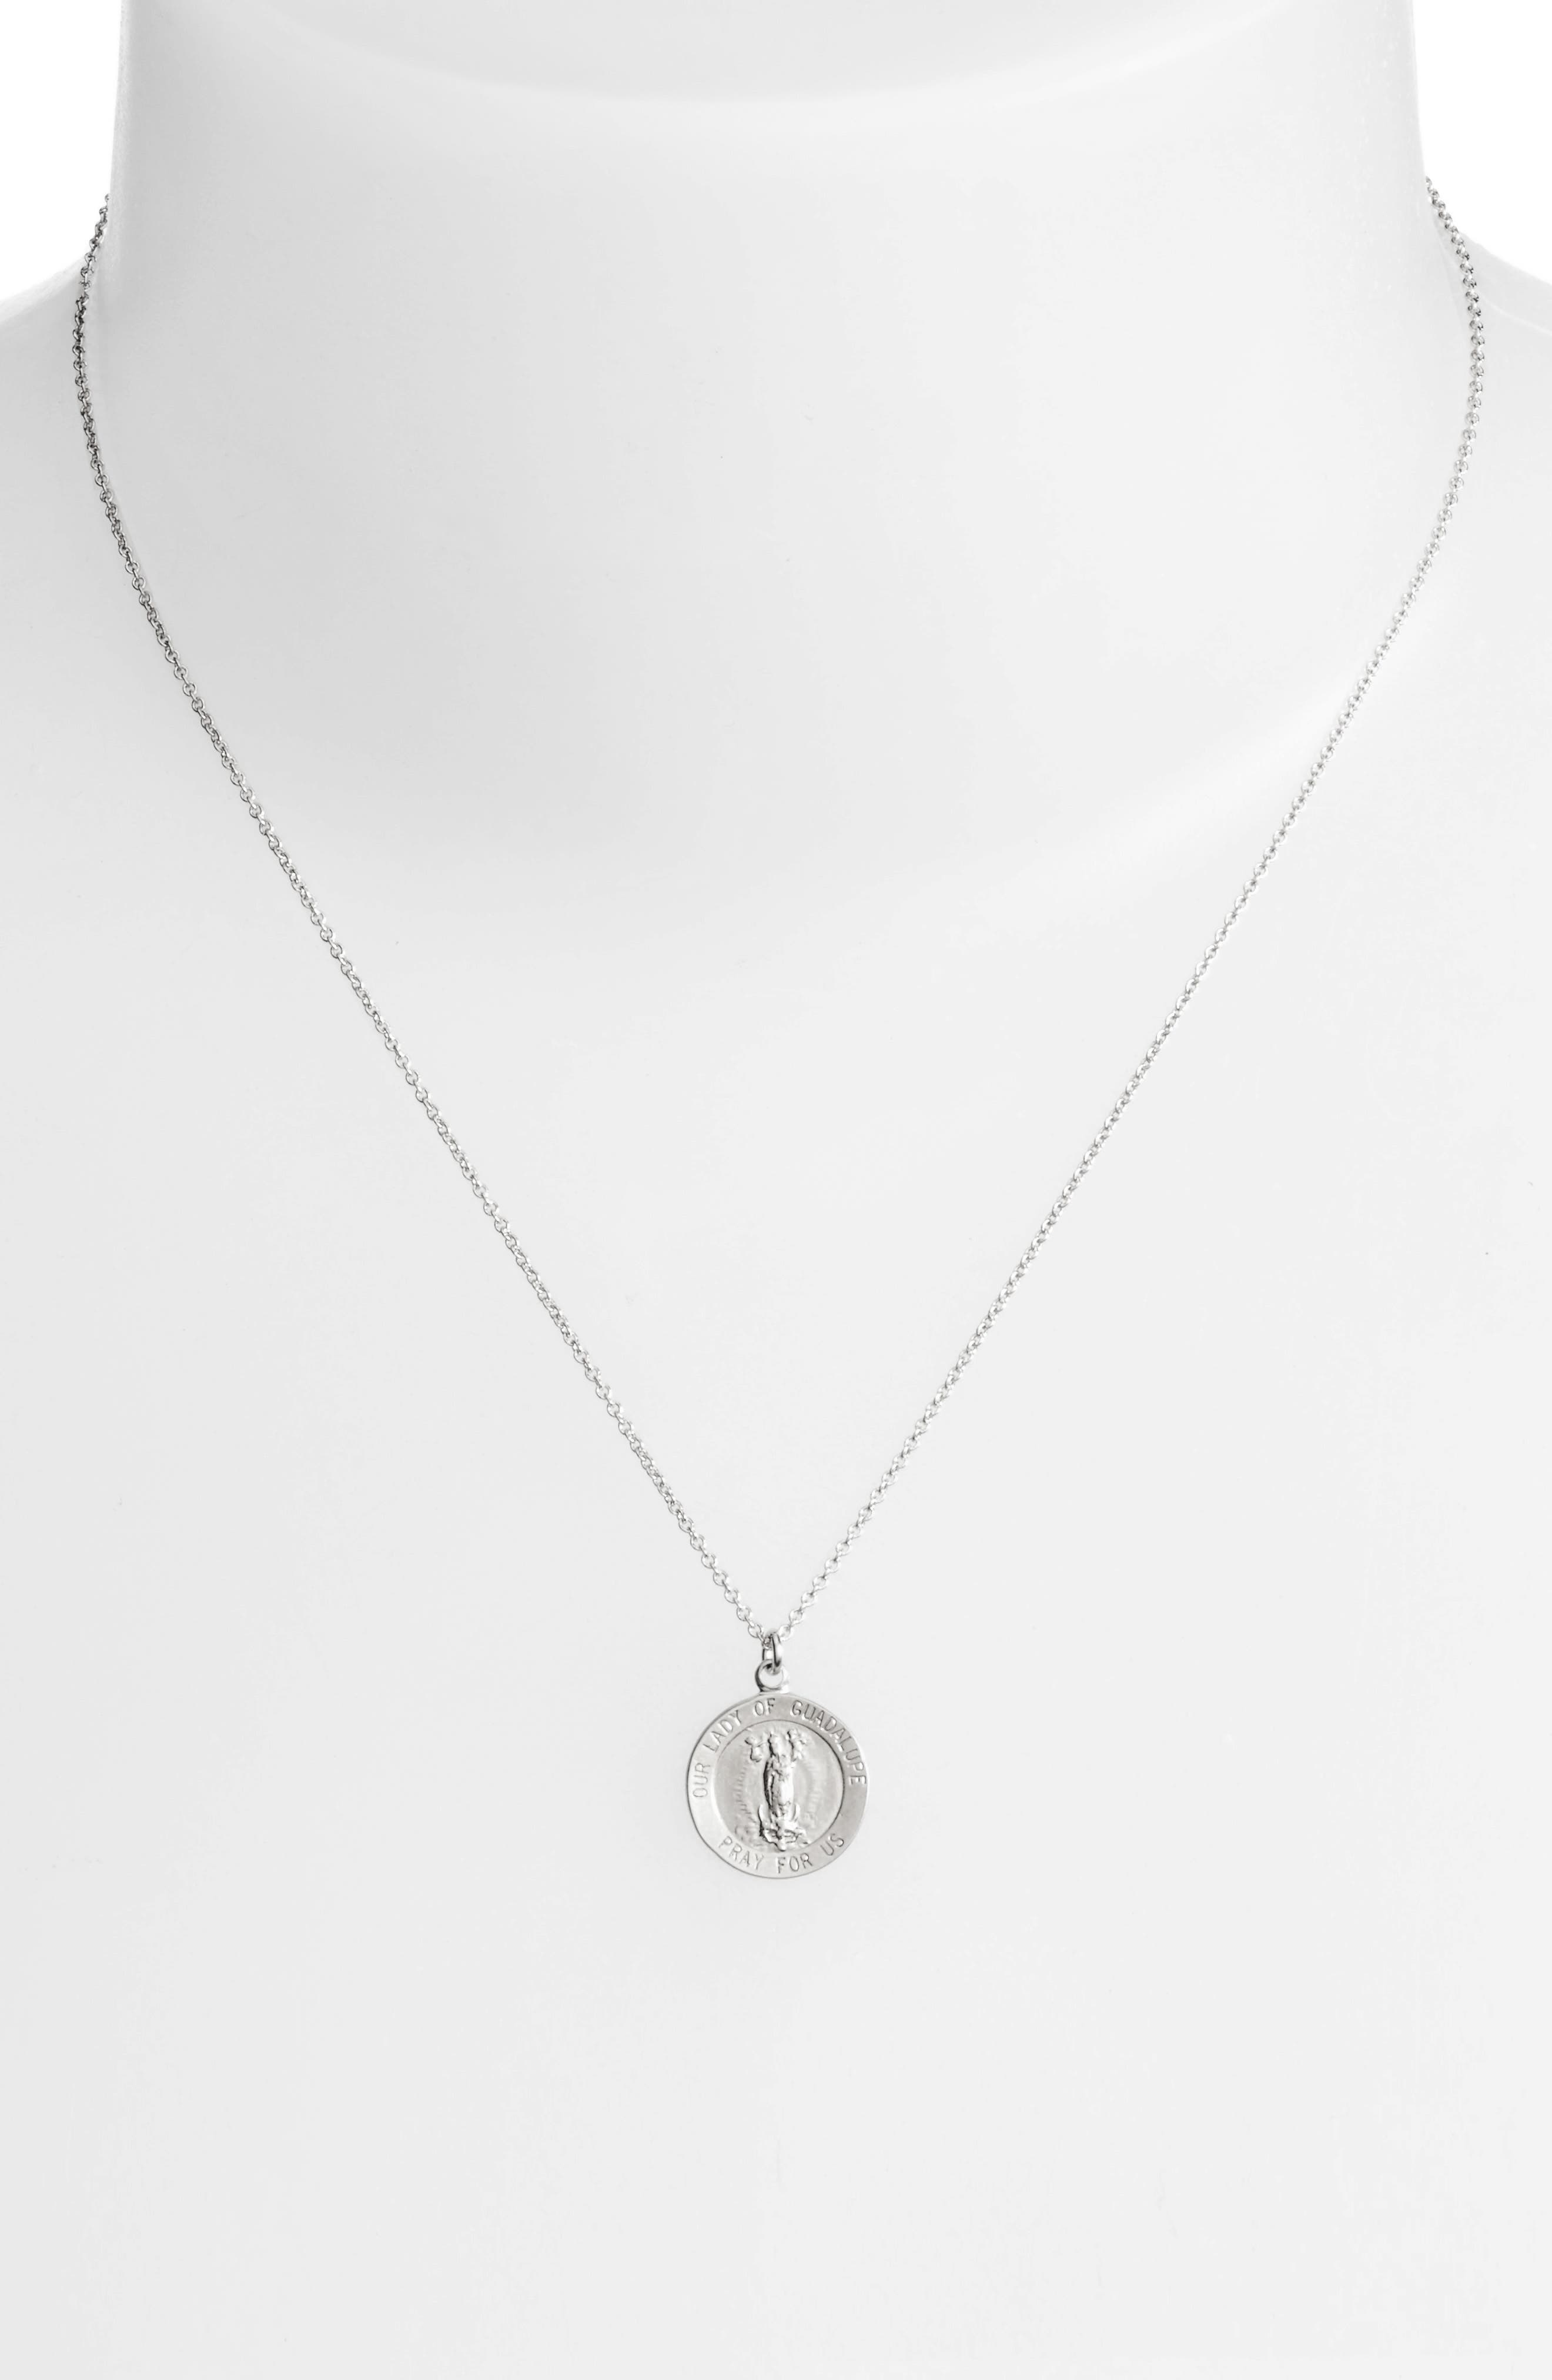 Our Lady of Guadalupe Pendant Necklace,                             Alternate thumbnail 3, color,